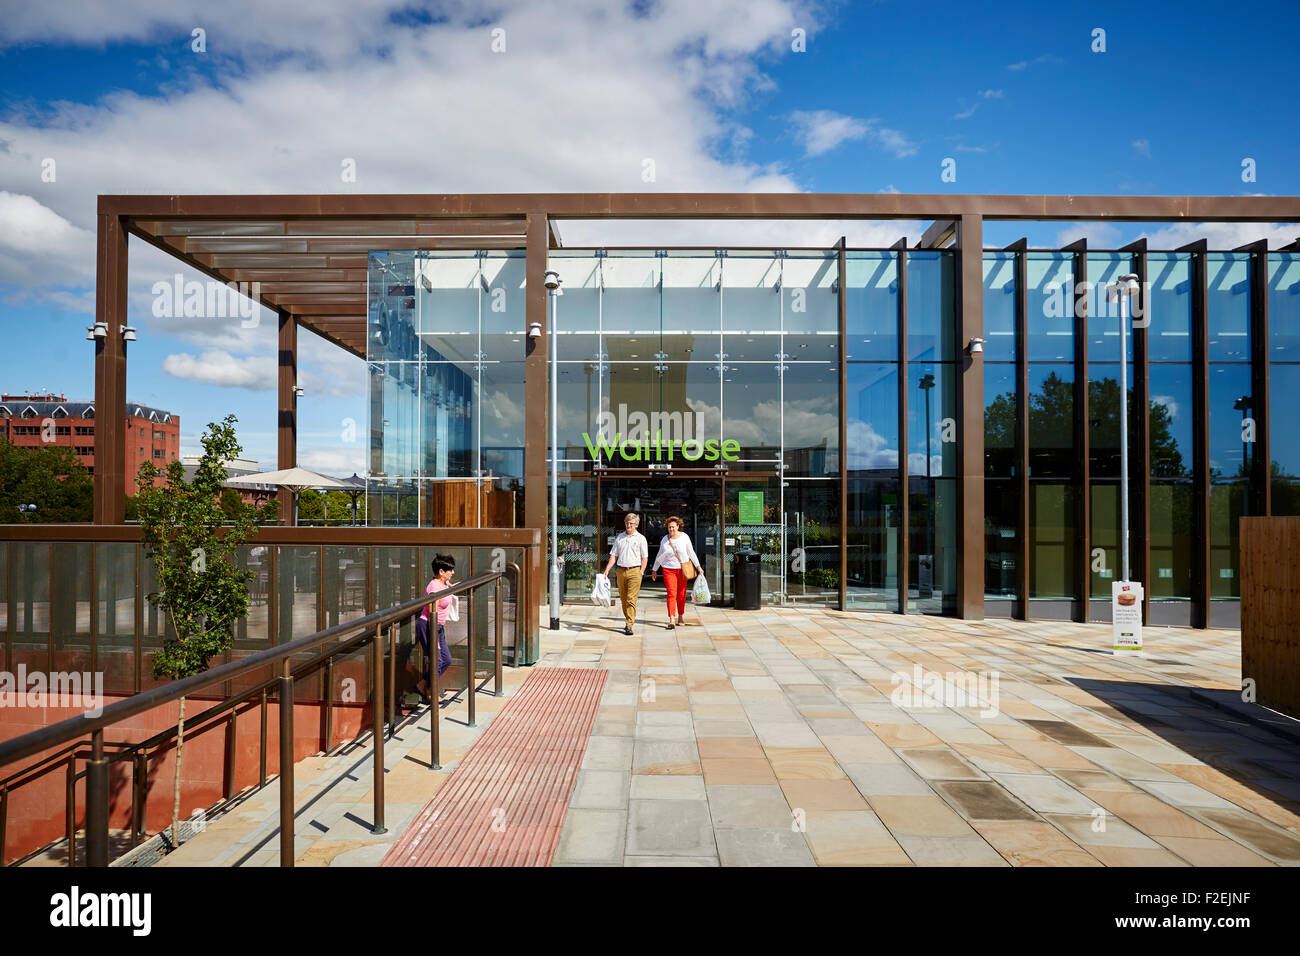 Waitrose store in Chester next to the Shropshire Union Canal   Pictured  exterior of the store Shops shopping shopper - Stock Image